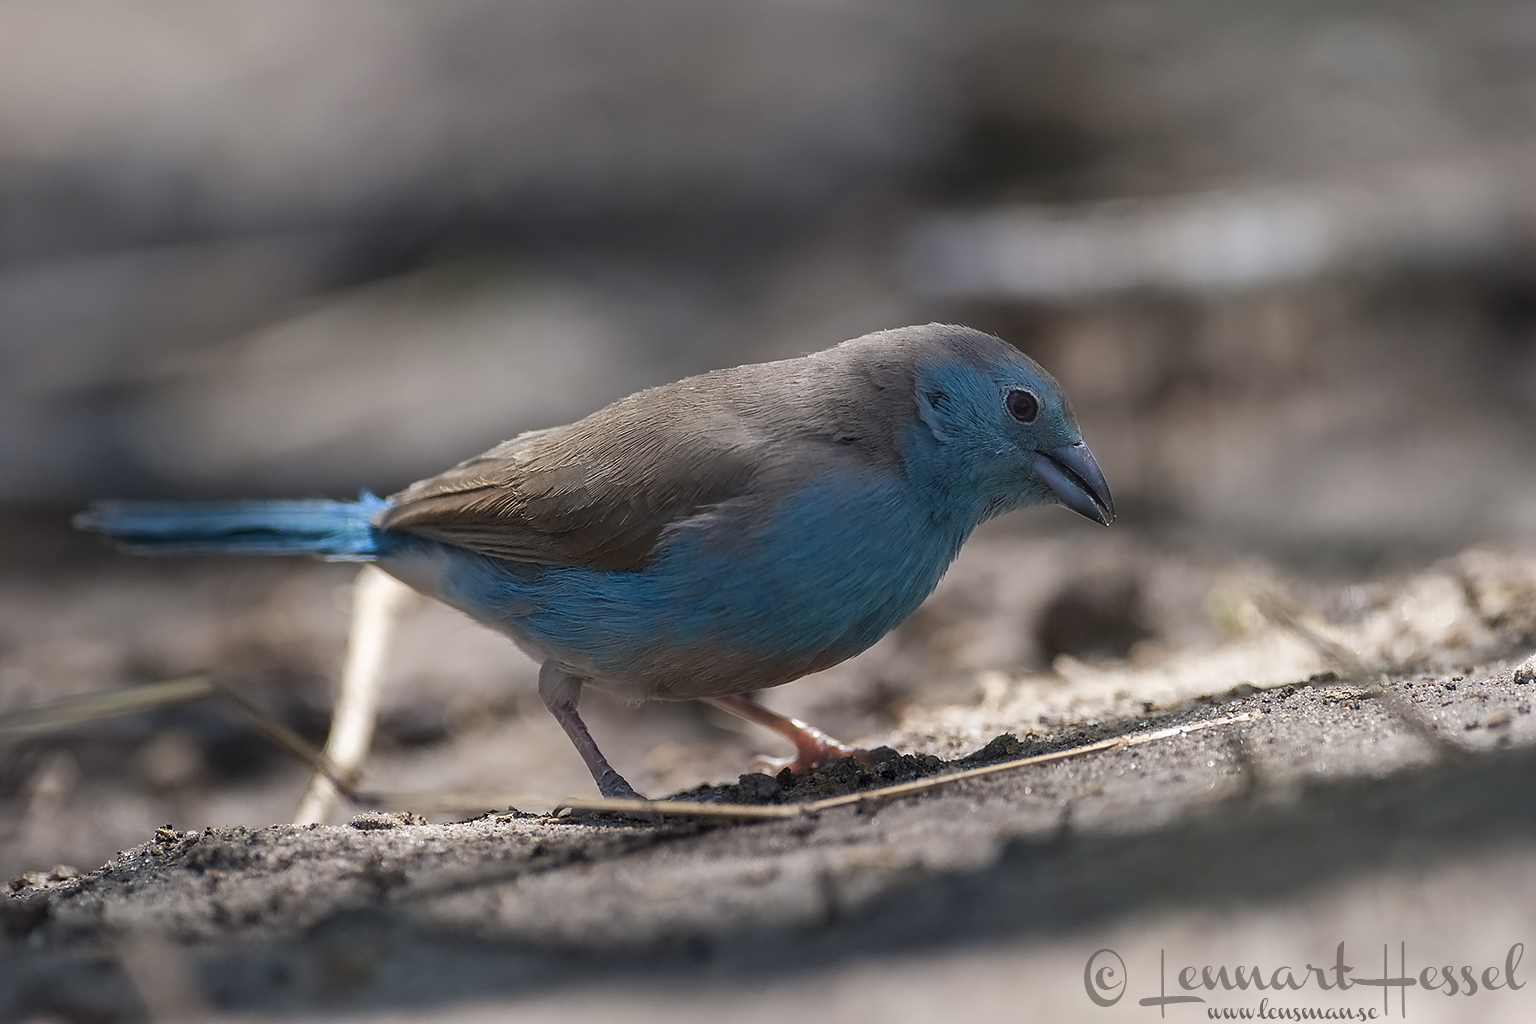 Blue Waxbill in Moremi Game Reserve, Botswana